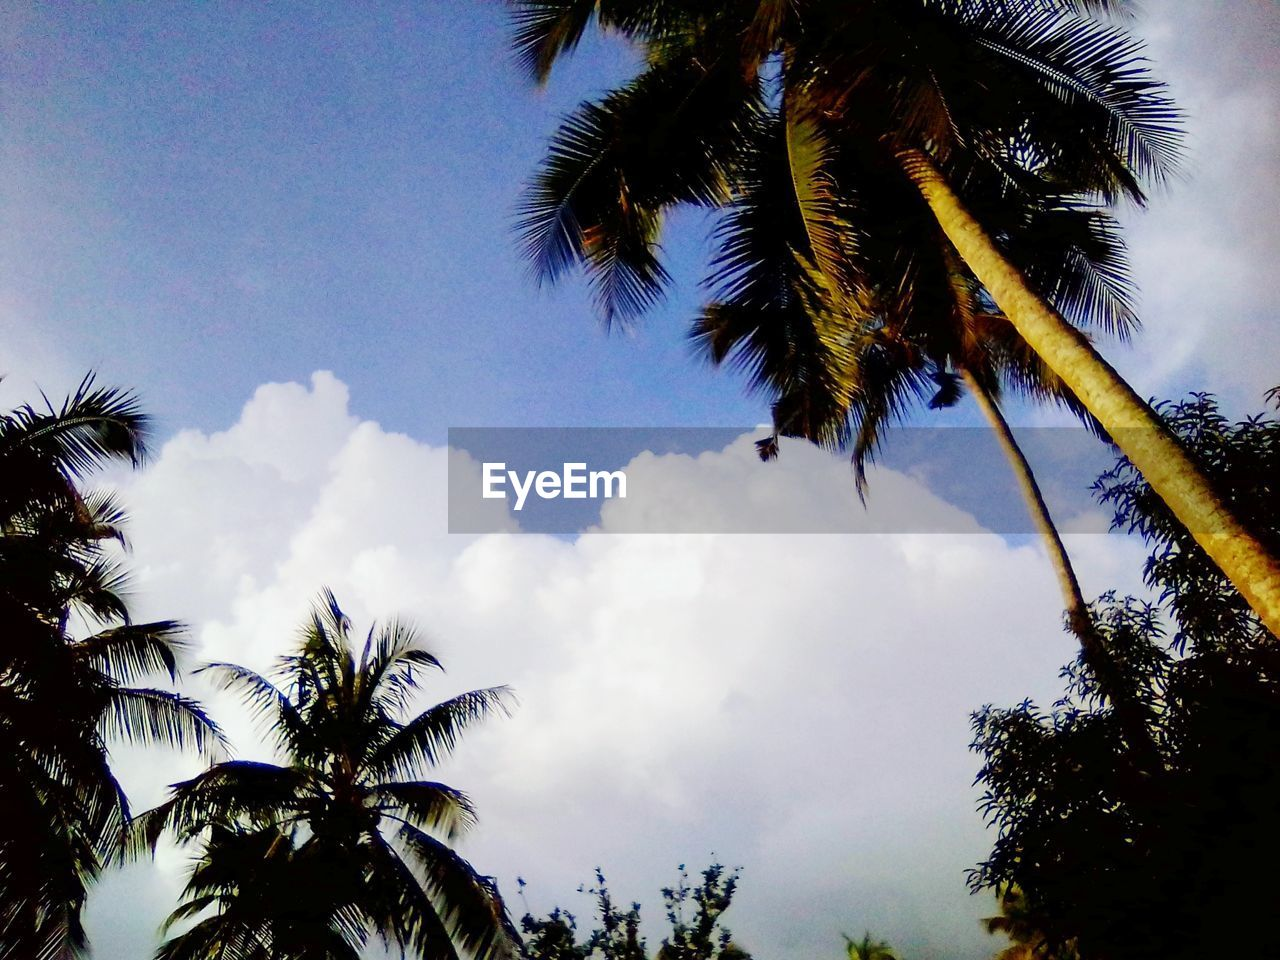 tree, sky, palm tree, plant, tropical climate, cloud - sky, low angle view, beauty in nature, growth, tranquility, nature, no people, tranquil scene, scenics - nature, day, silhouette, outdoors, coconut palm tree, leaf, tree trunk, palm leaf, tropical tree